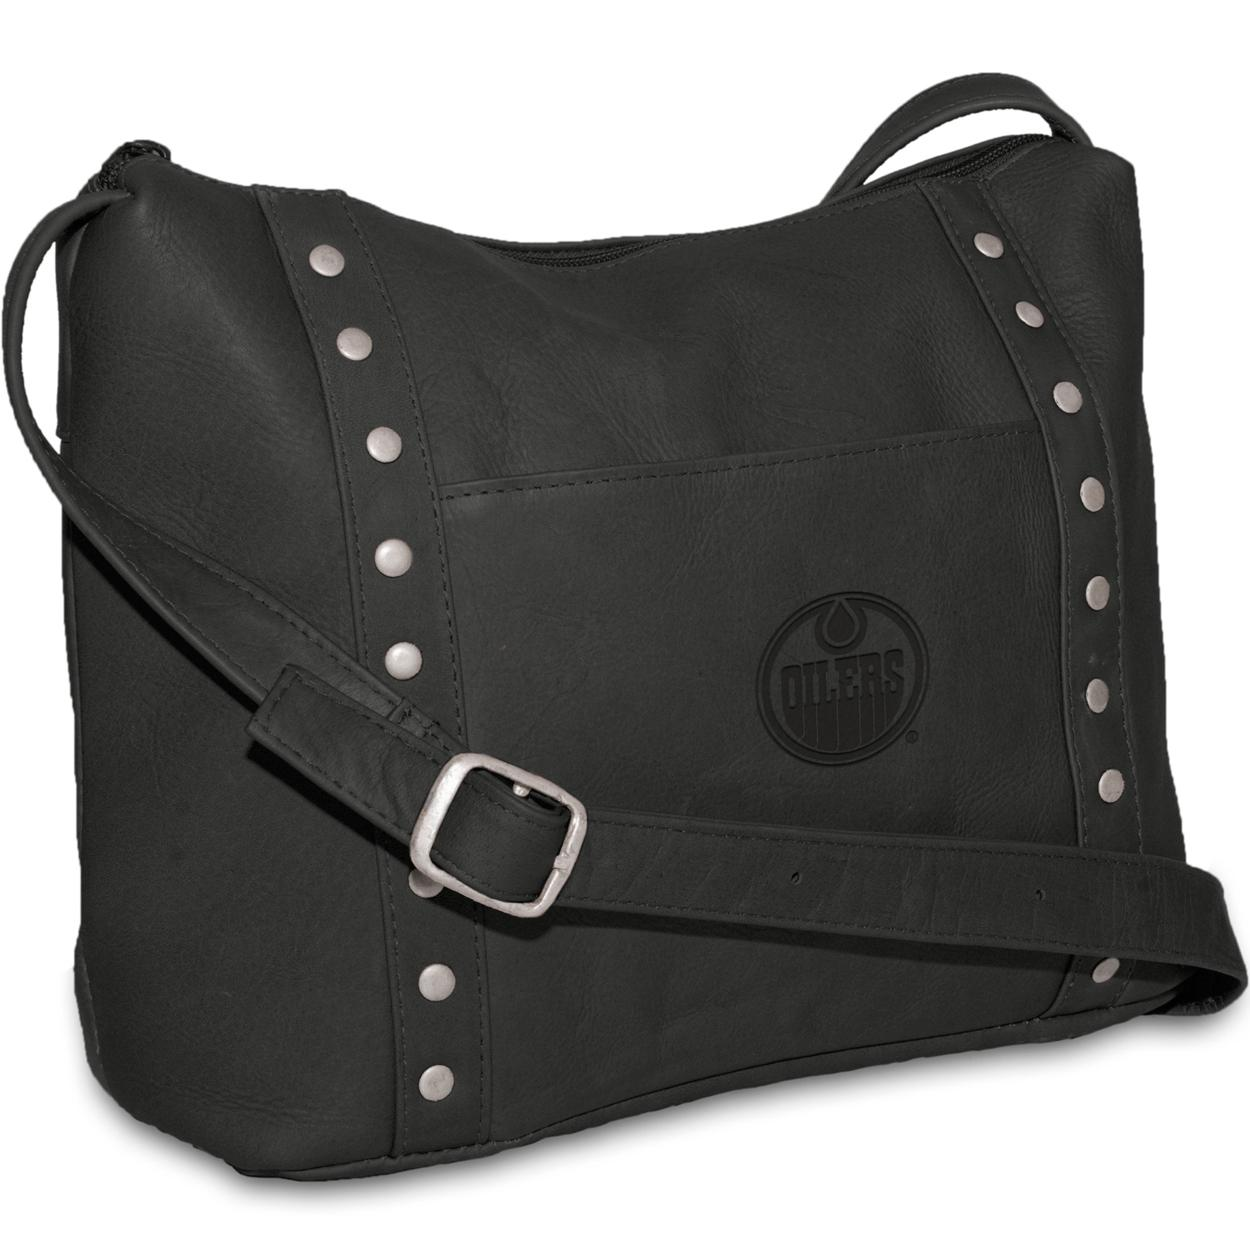 Pangea Black Leather Women's Top Zip Handbag - Edmonton Oilers Edmonton Oilers PANGHKYEDMHBB